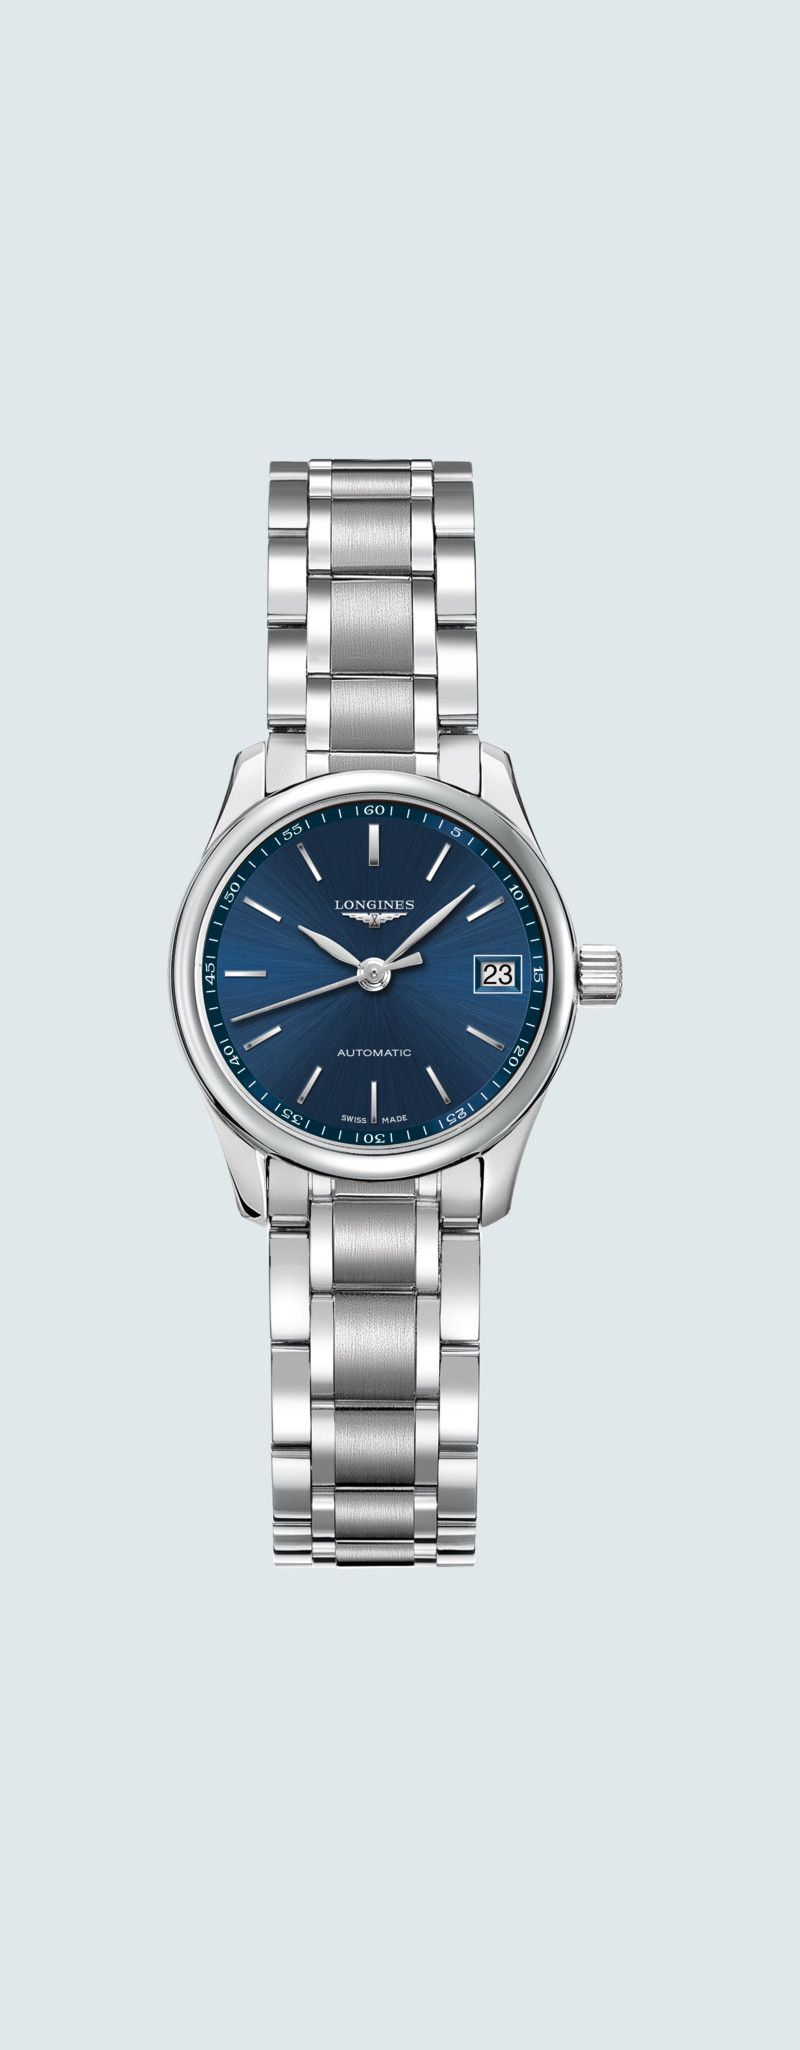 25.50 mm Stainless steel case with Sunray blue dial and Stainless steel strap - case zoom view